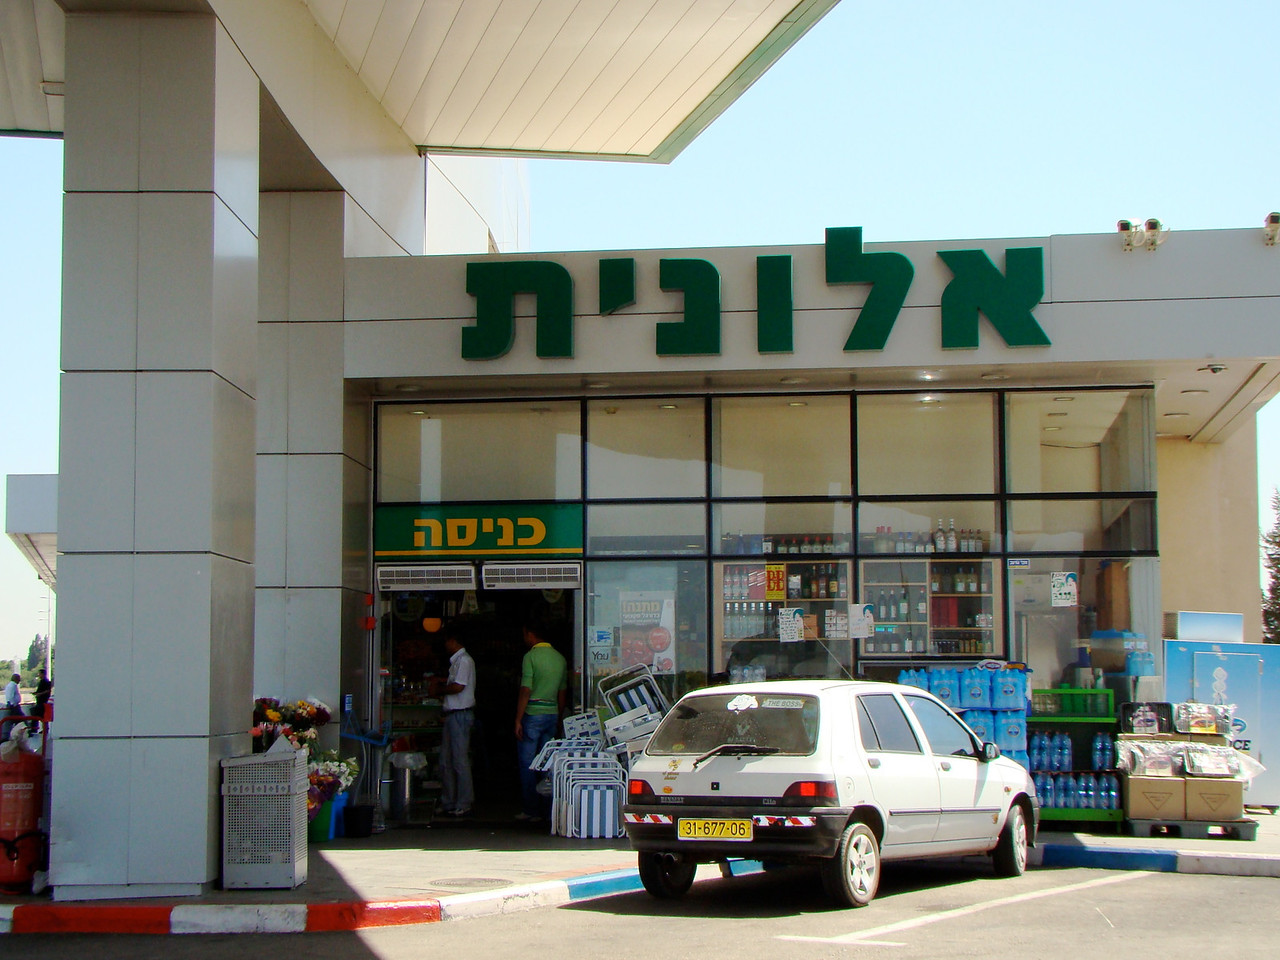 Gas Station outside of Jerusalem